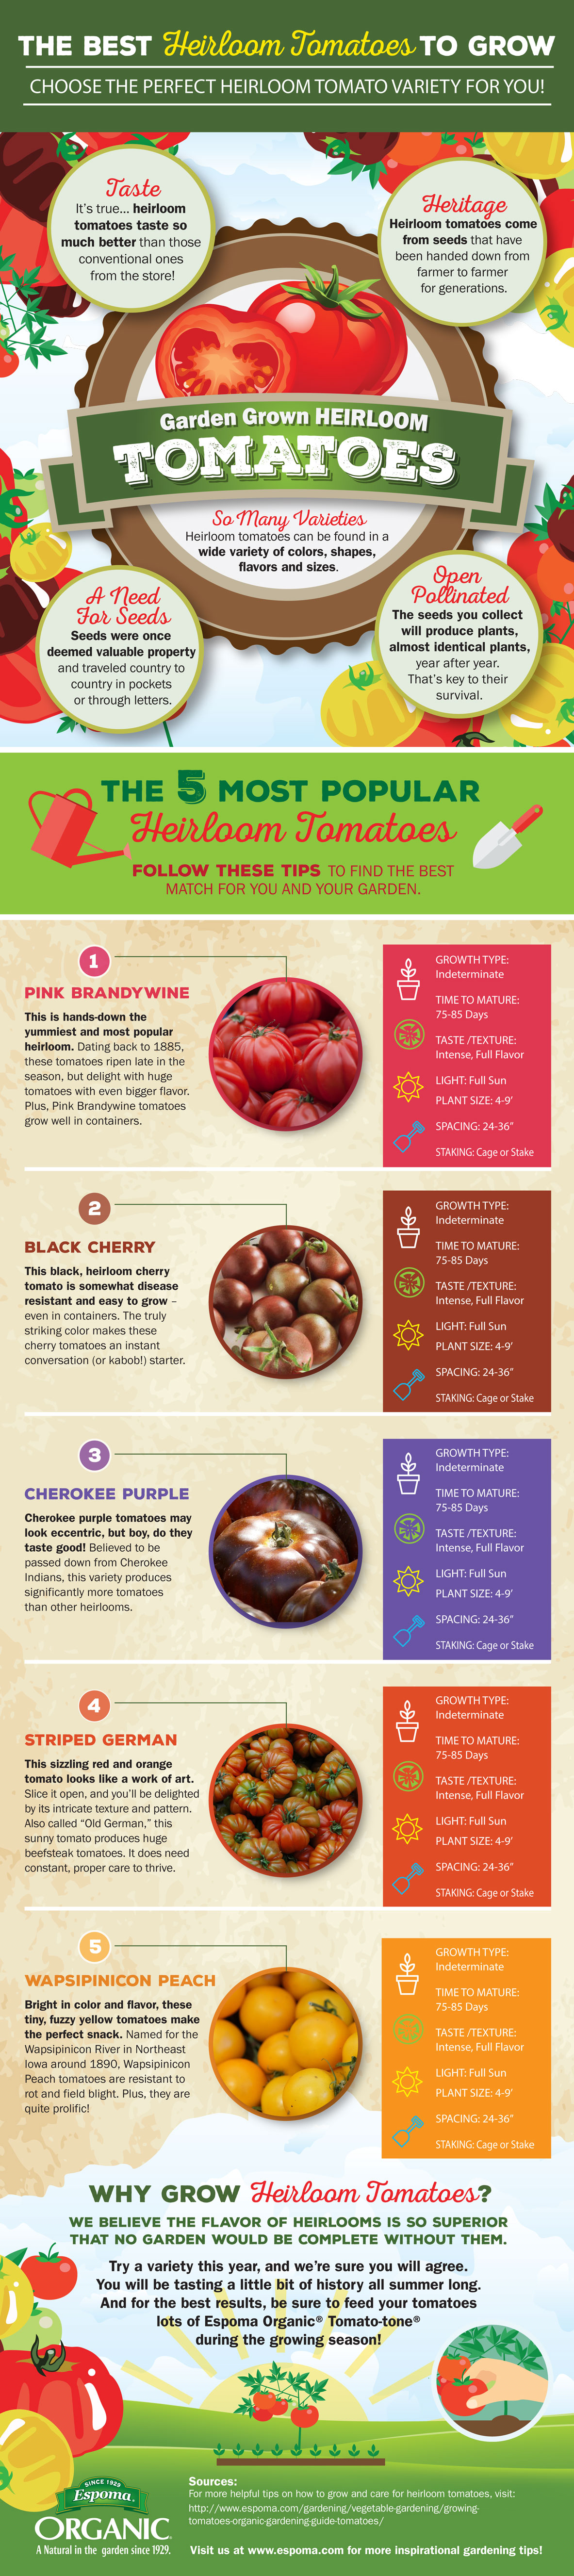 The Best Heirloom Tomatoes to Grow | Espoma